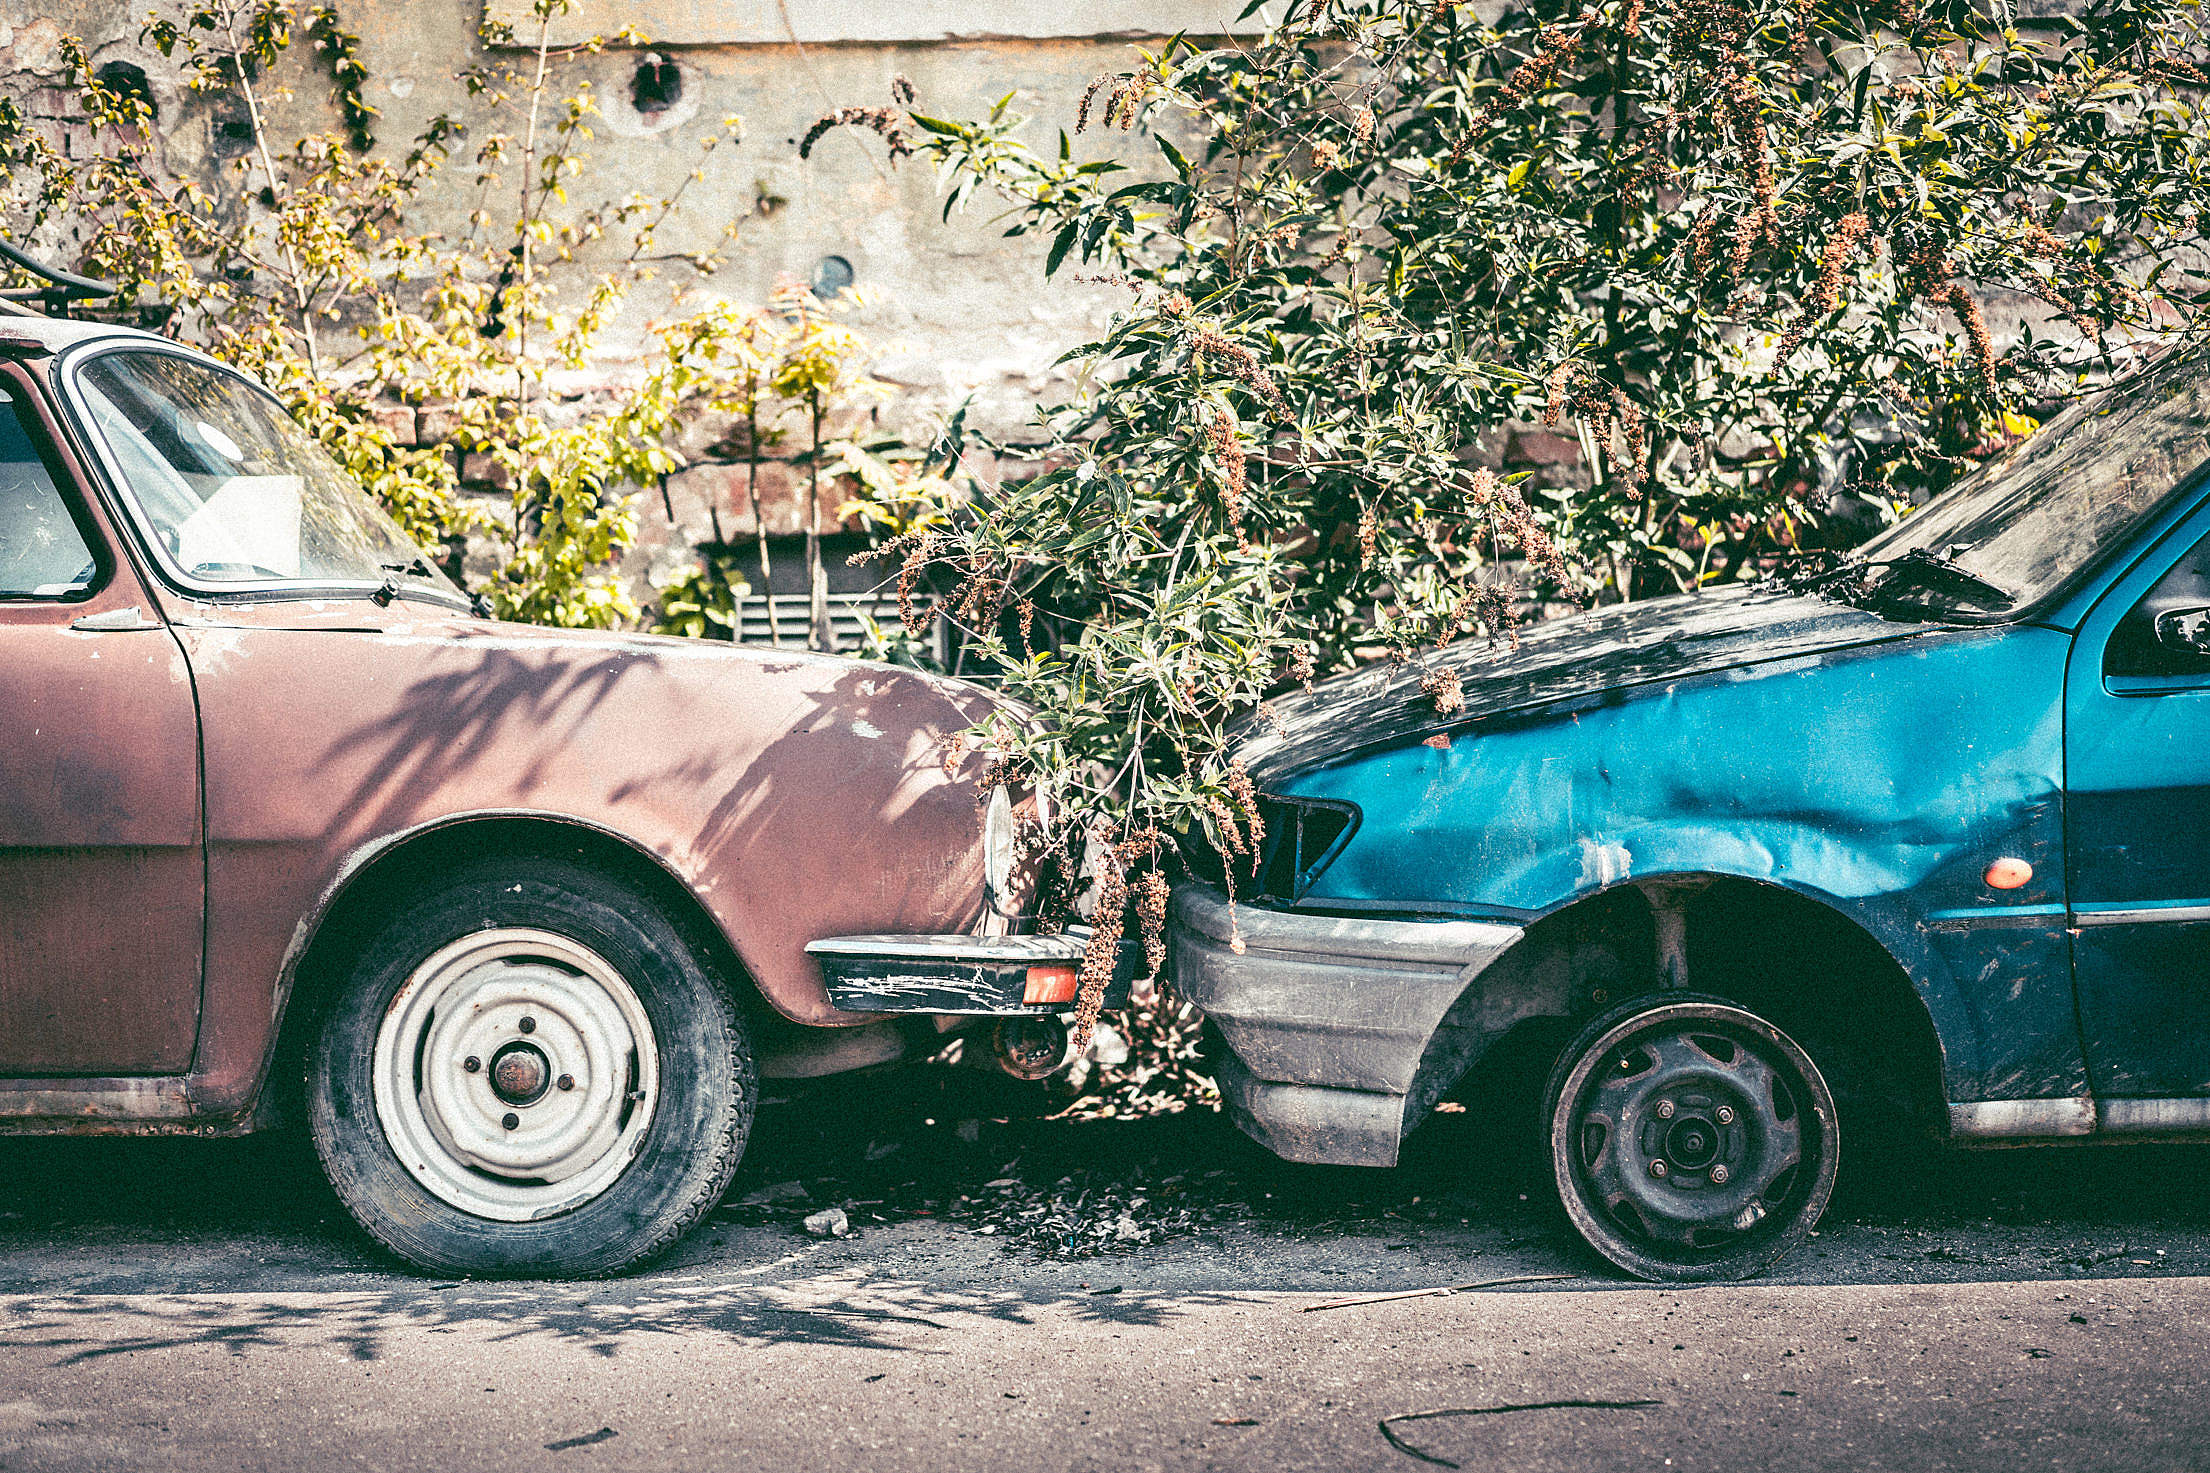 Old Broken Cars Free Stock Photo